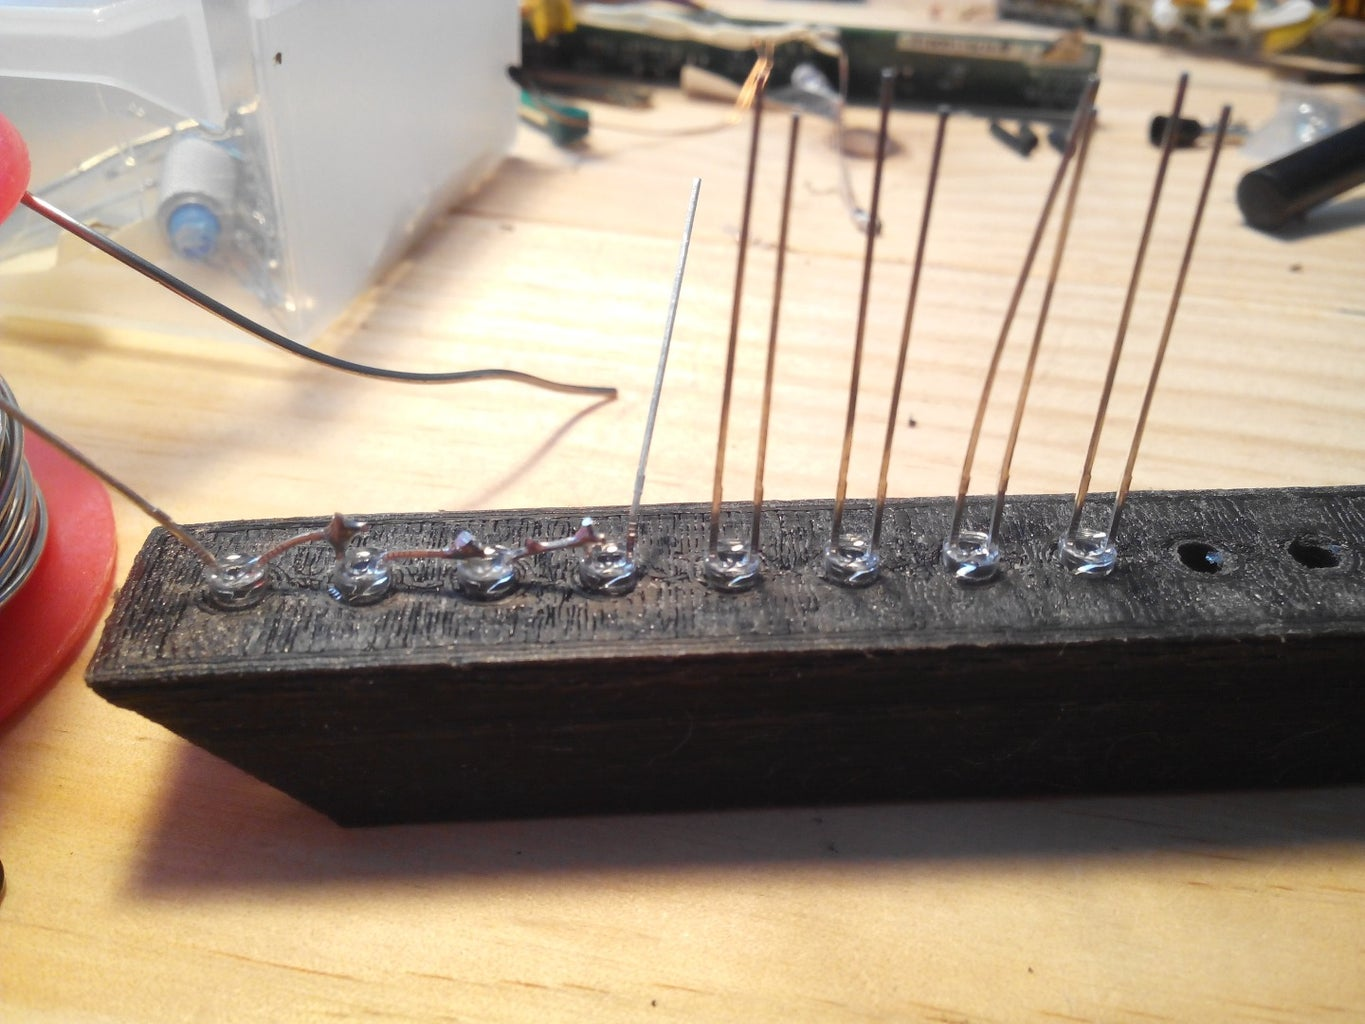 Wiring the Leds and Assembly